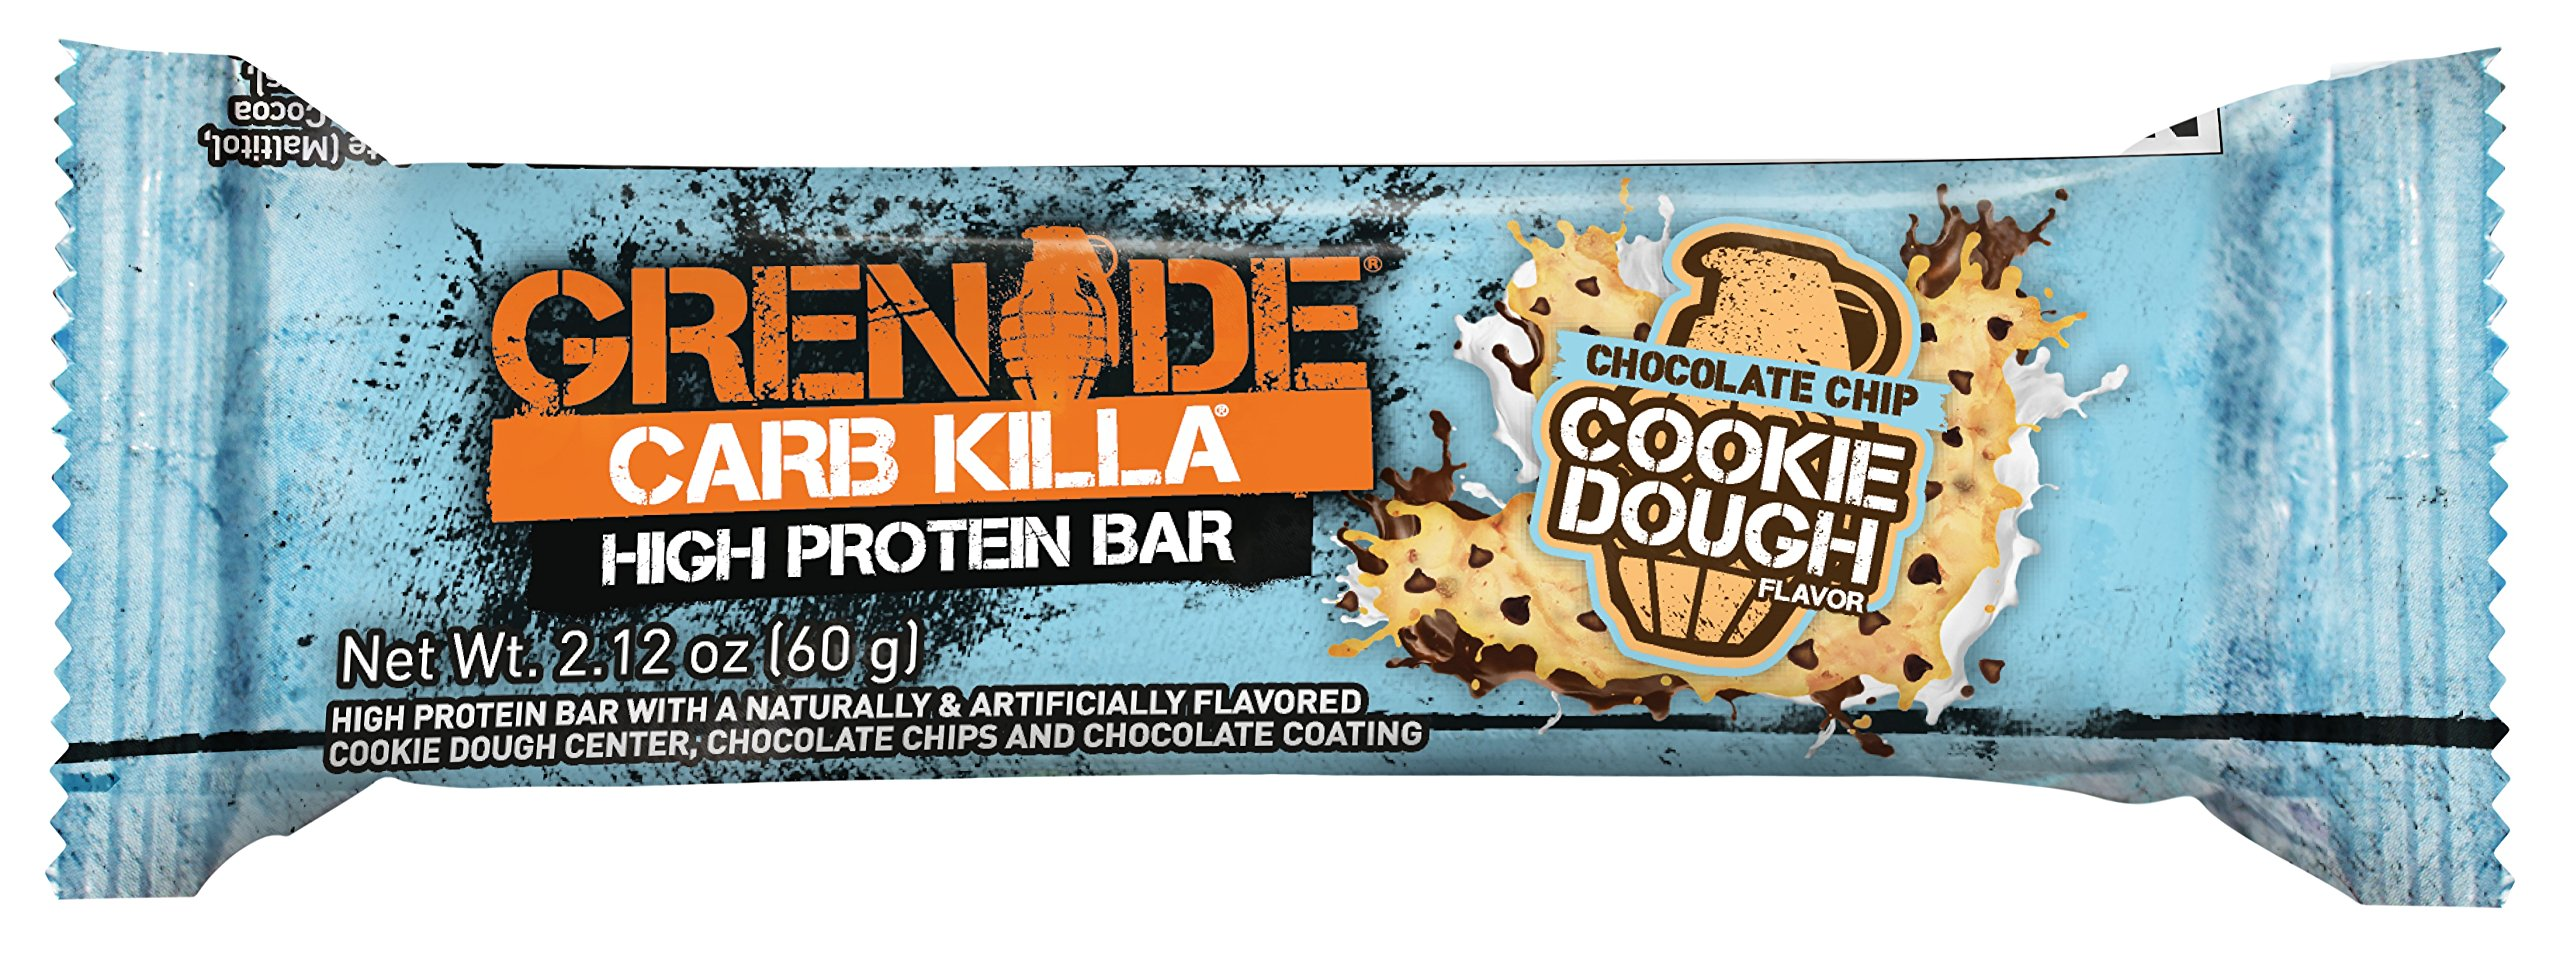 Grenade Carb Killa Bar, Chocolate Chip Cookie Dough, 12 Count